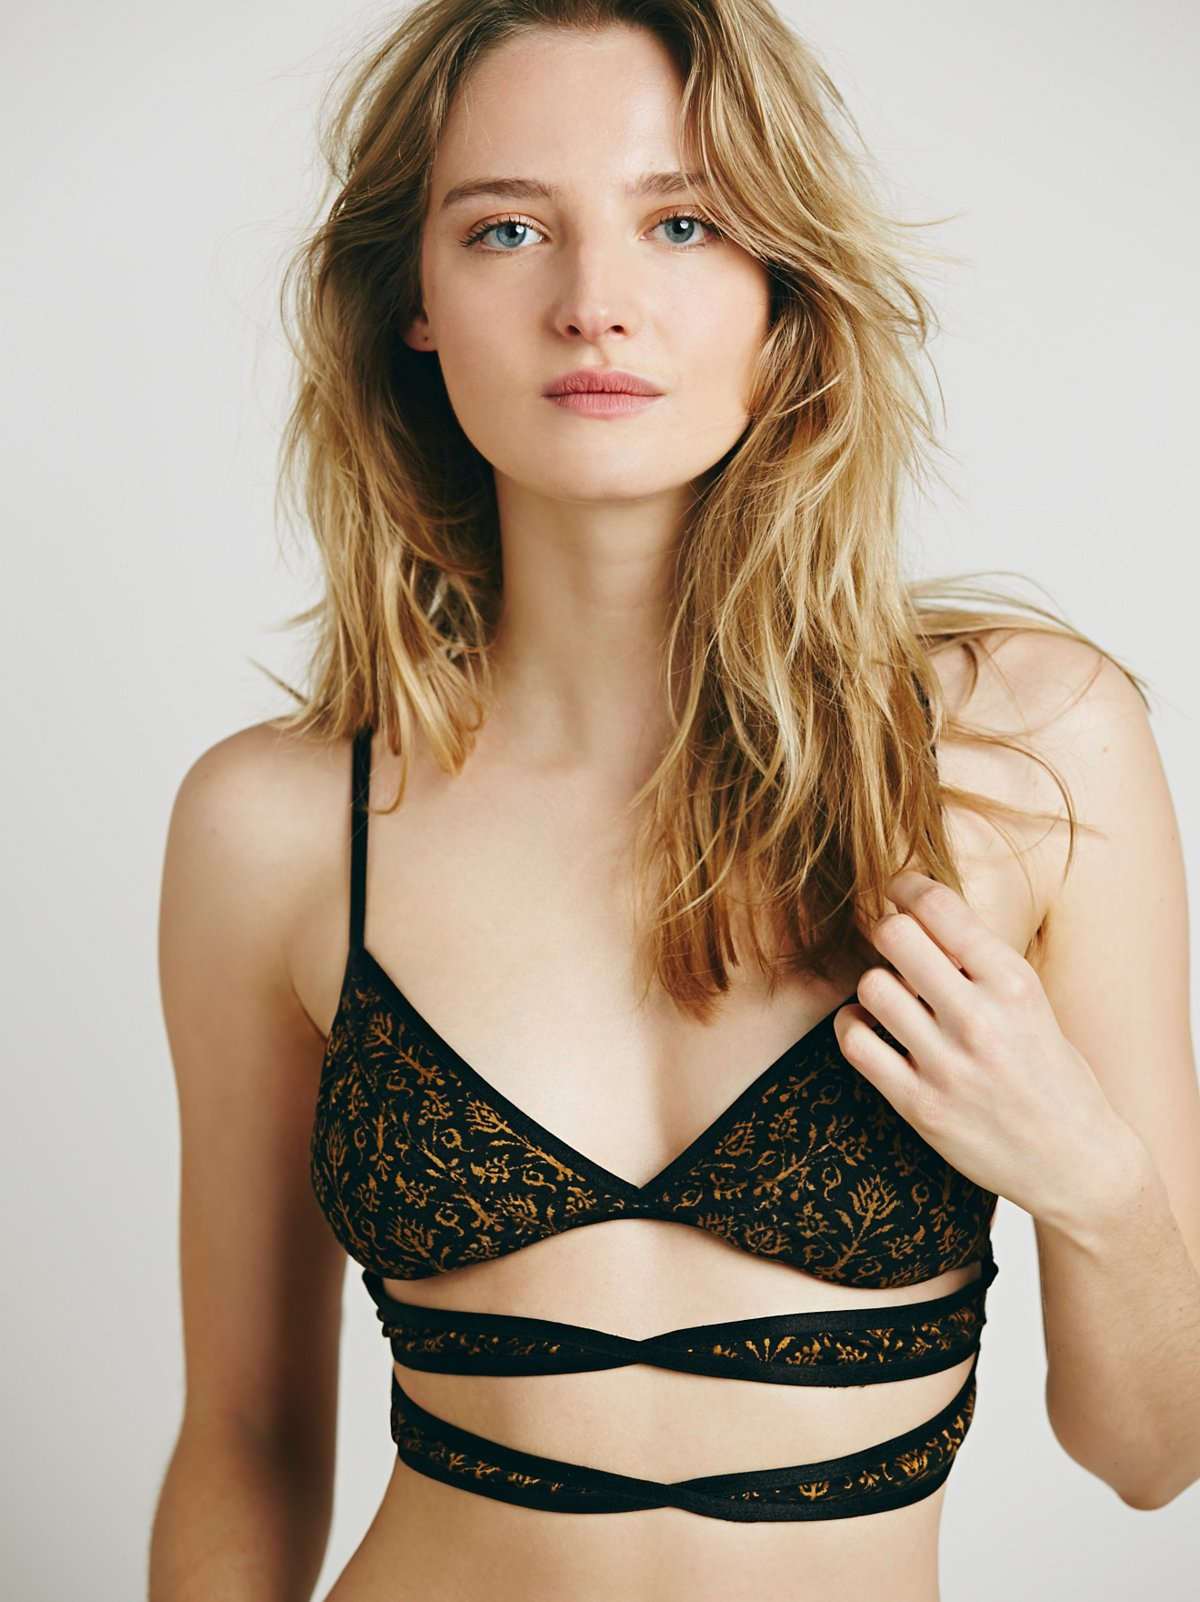 A Real Cut Up Soft Bra